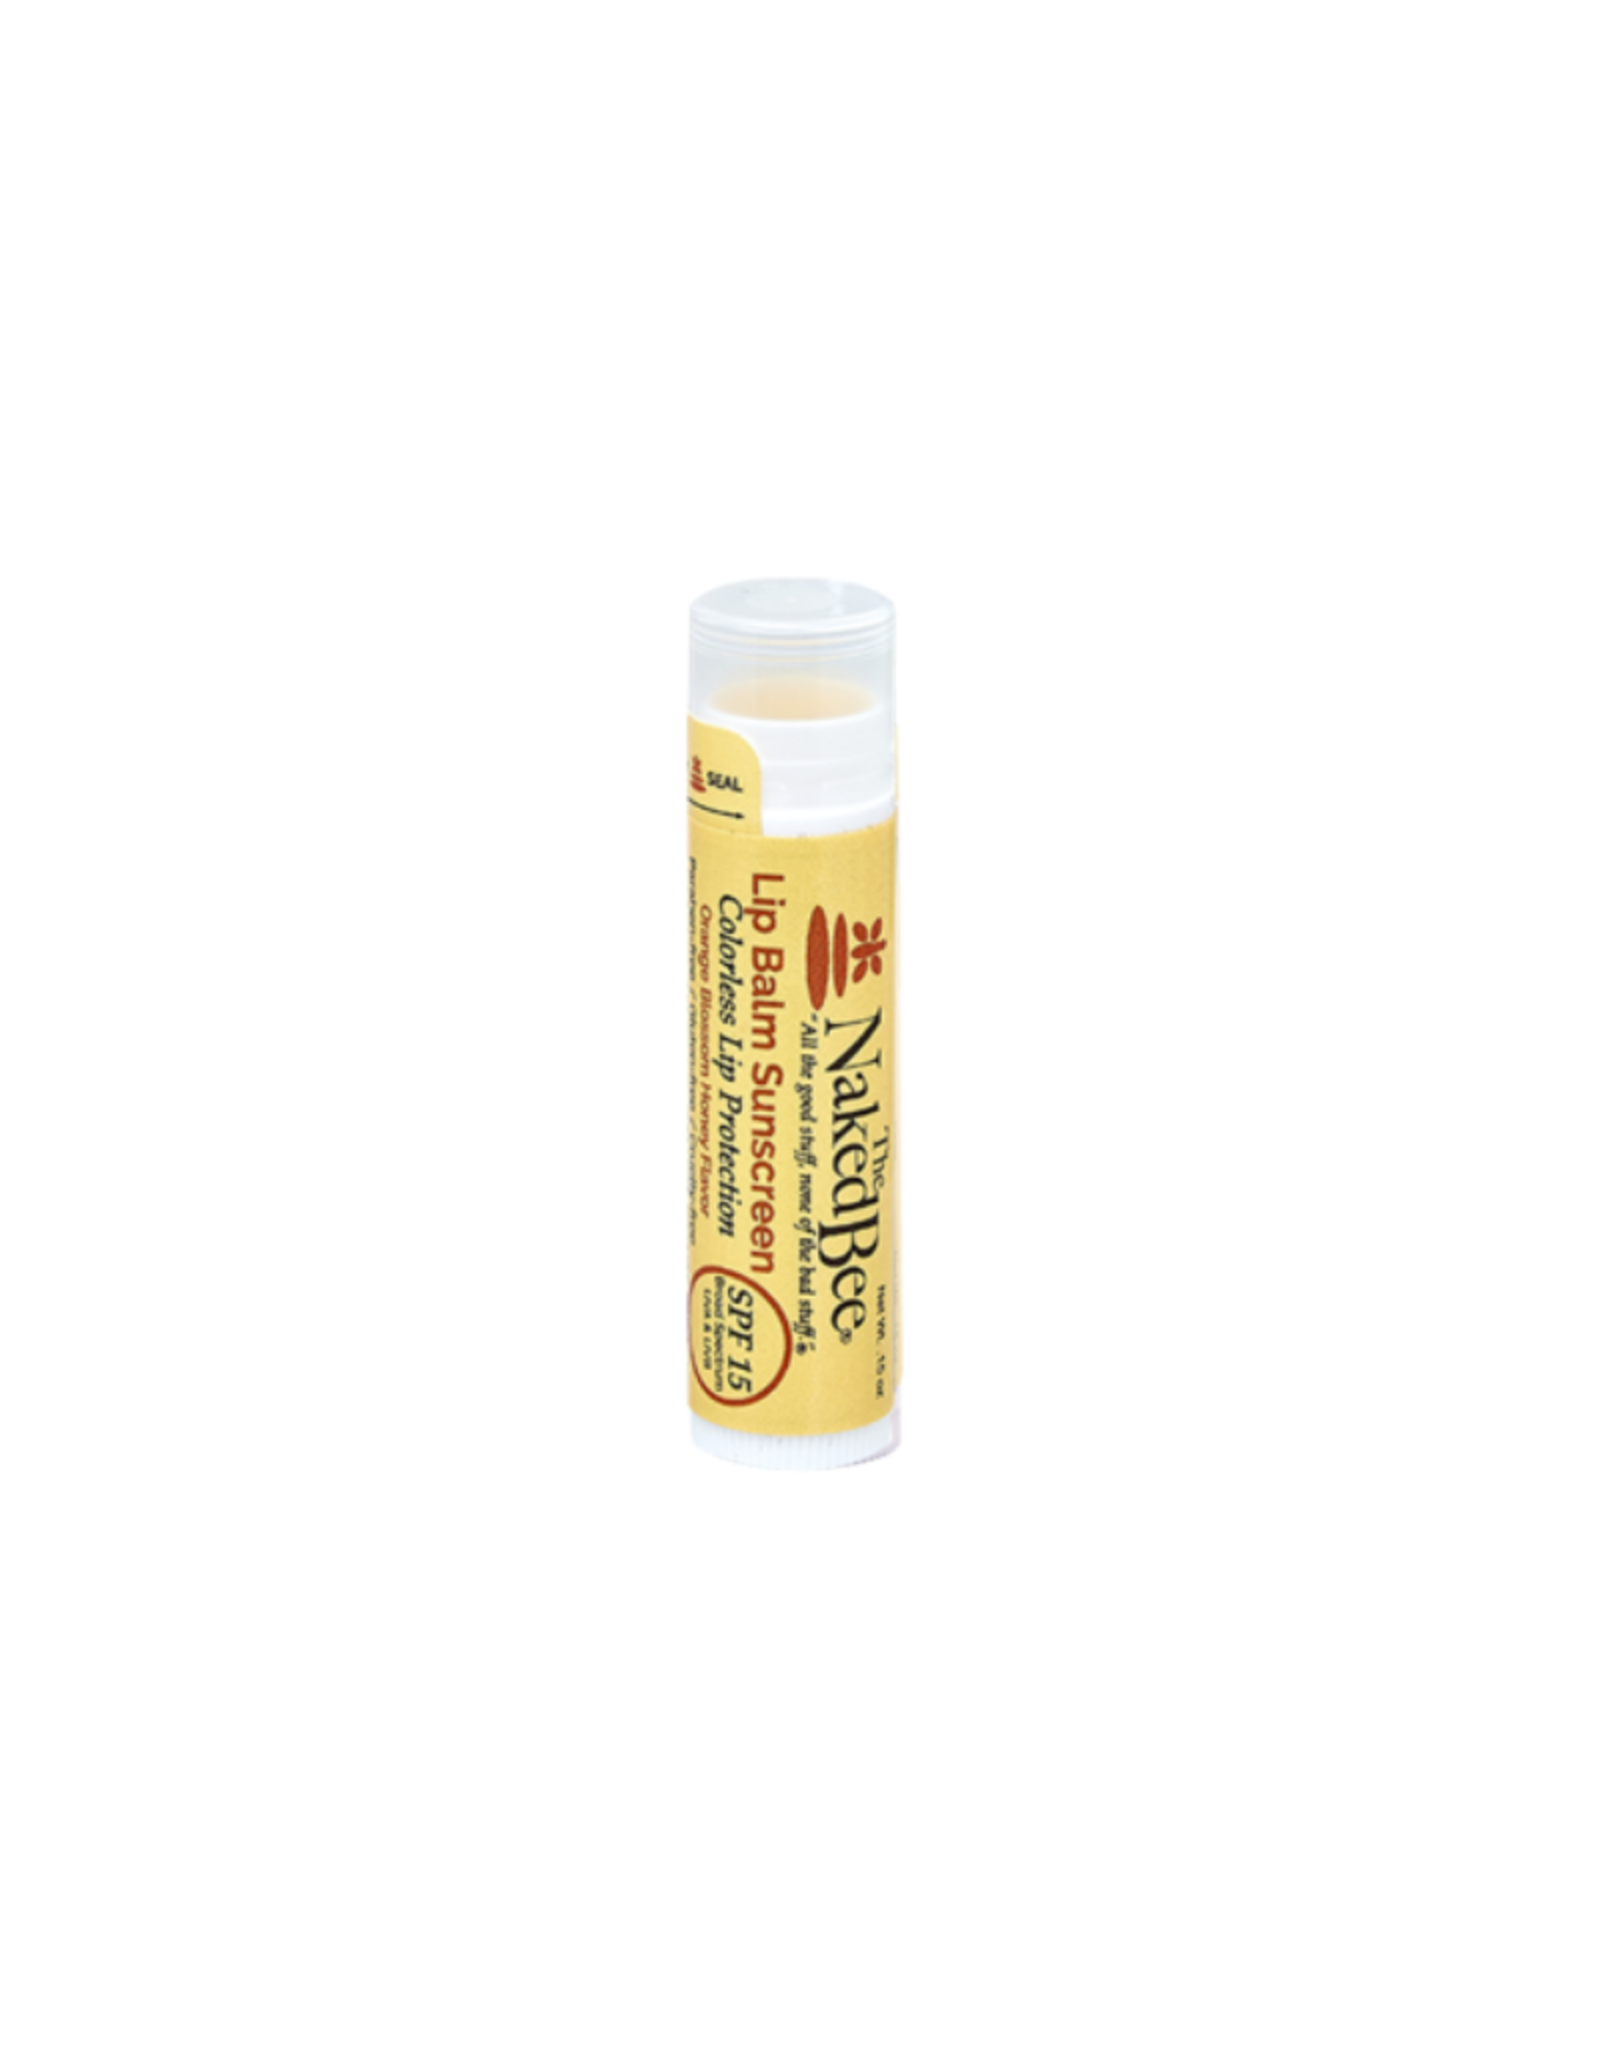 The Naked Bee SPF 15 Colorless Lip Balm